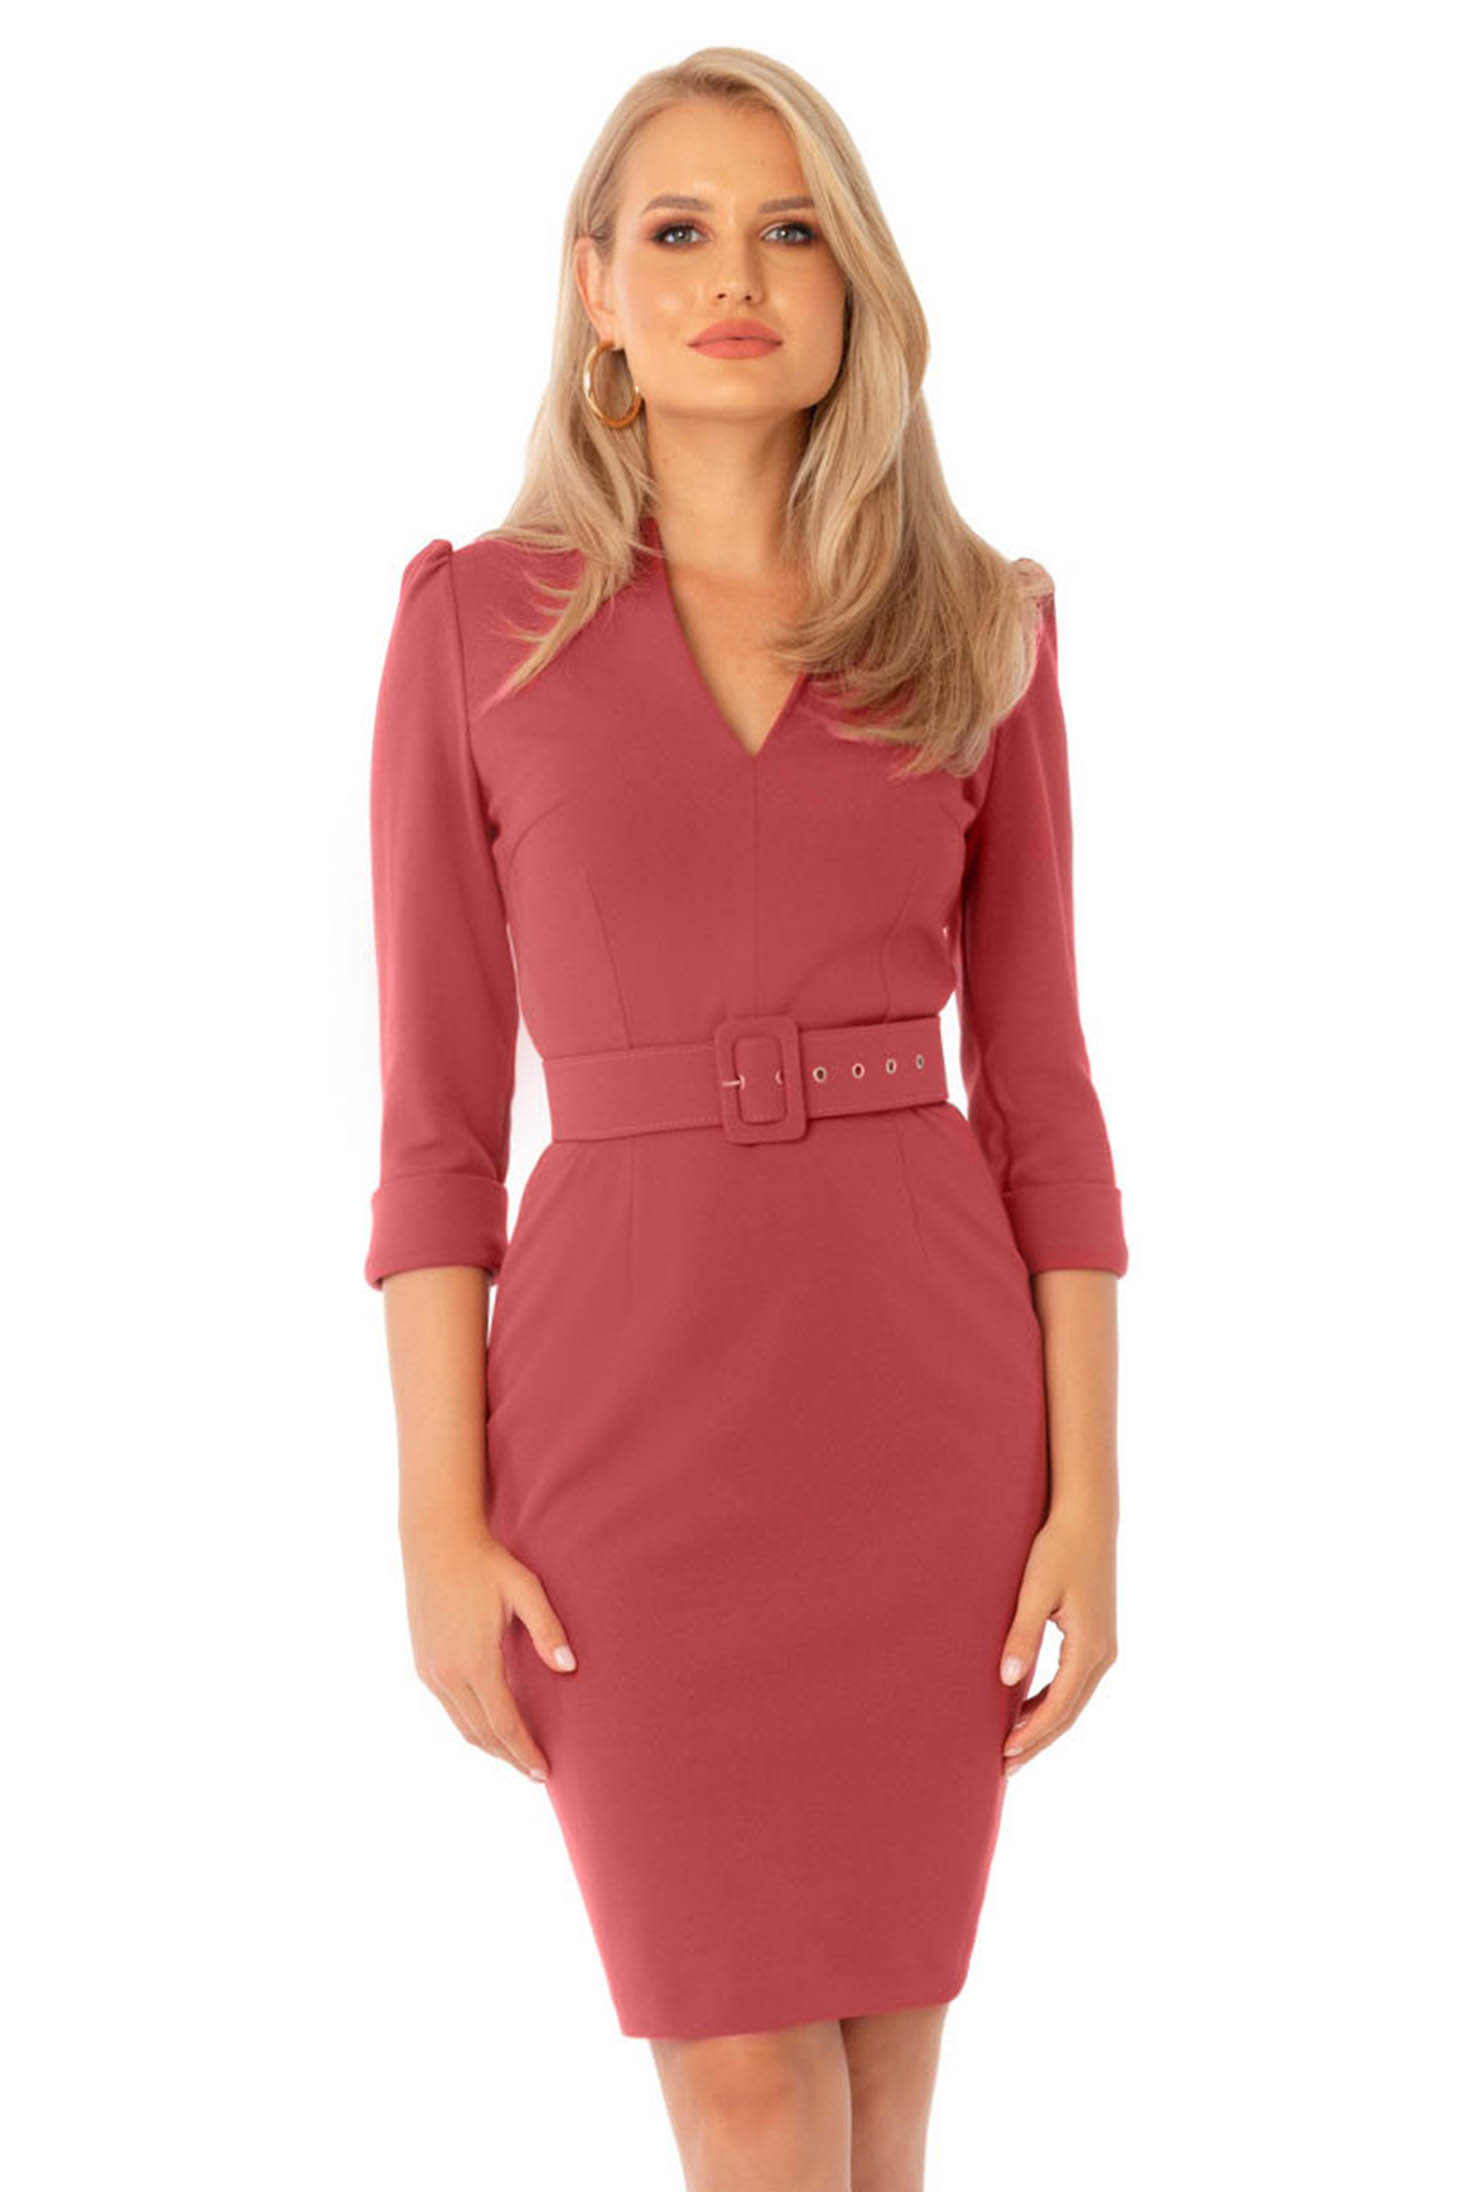 Coral dress office midi pencil with v-neckline accessorized with belt